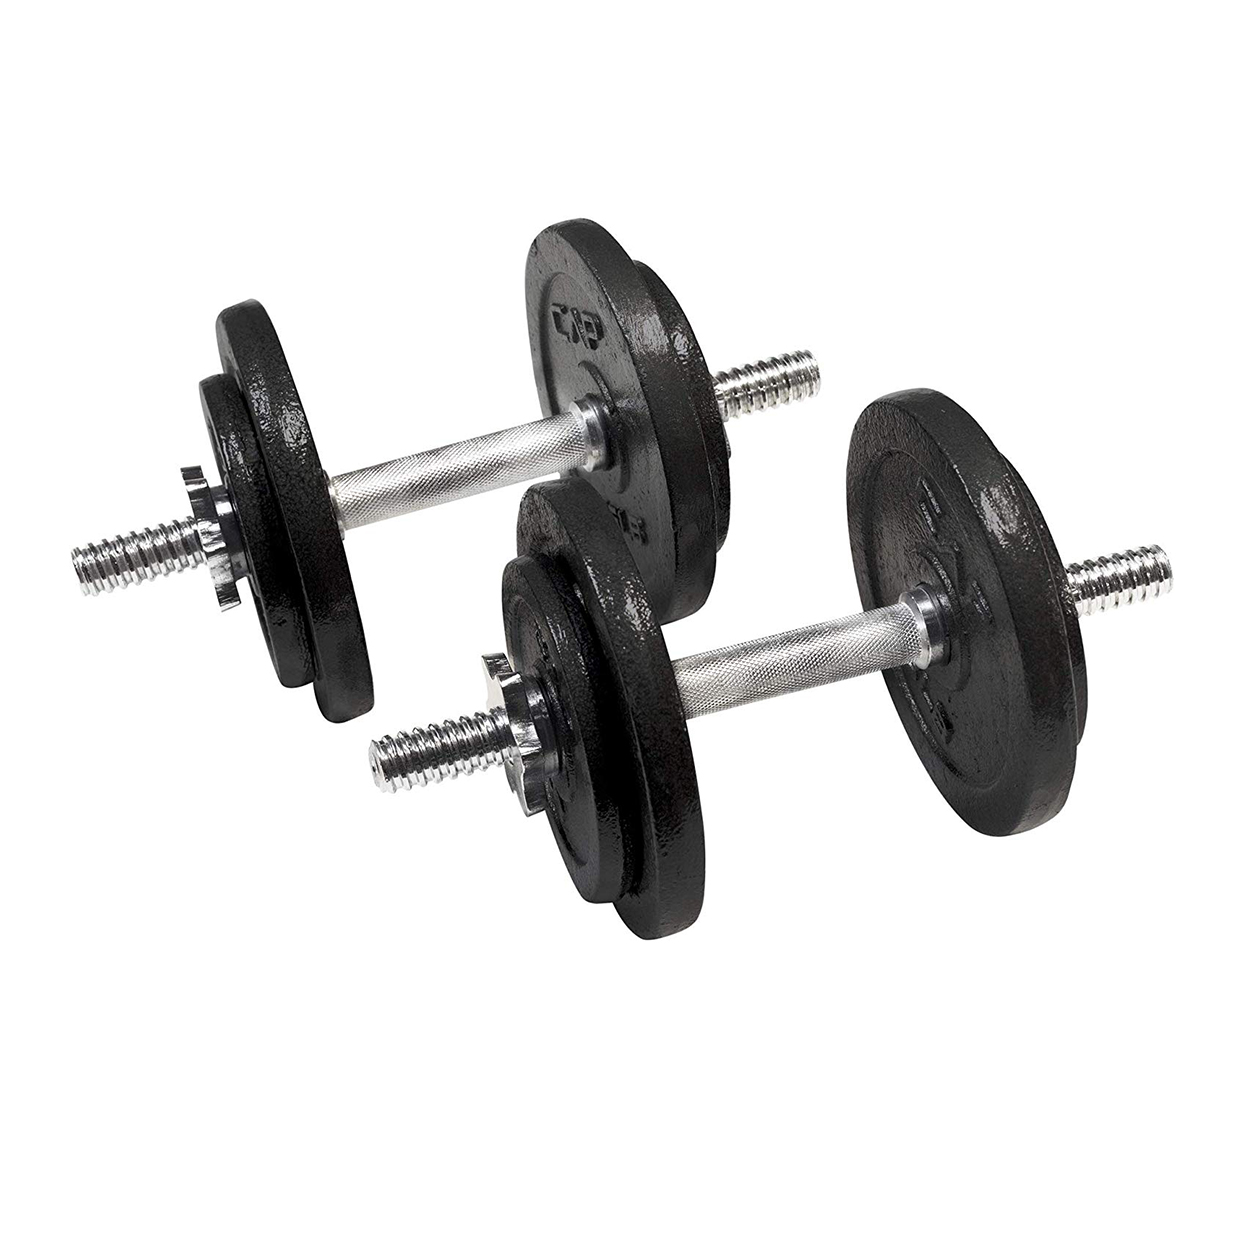 CAP Barbell 50-Pound Adjustable Dumbbell